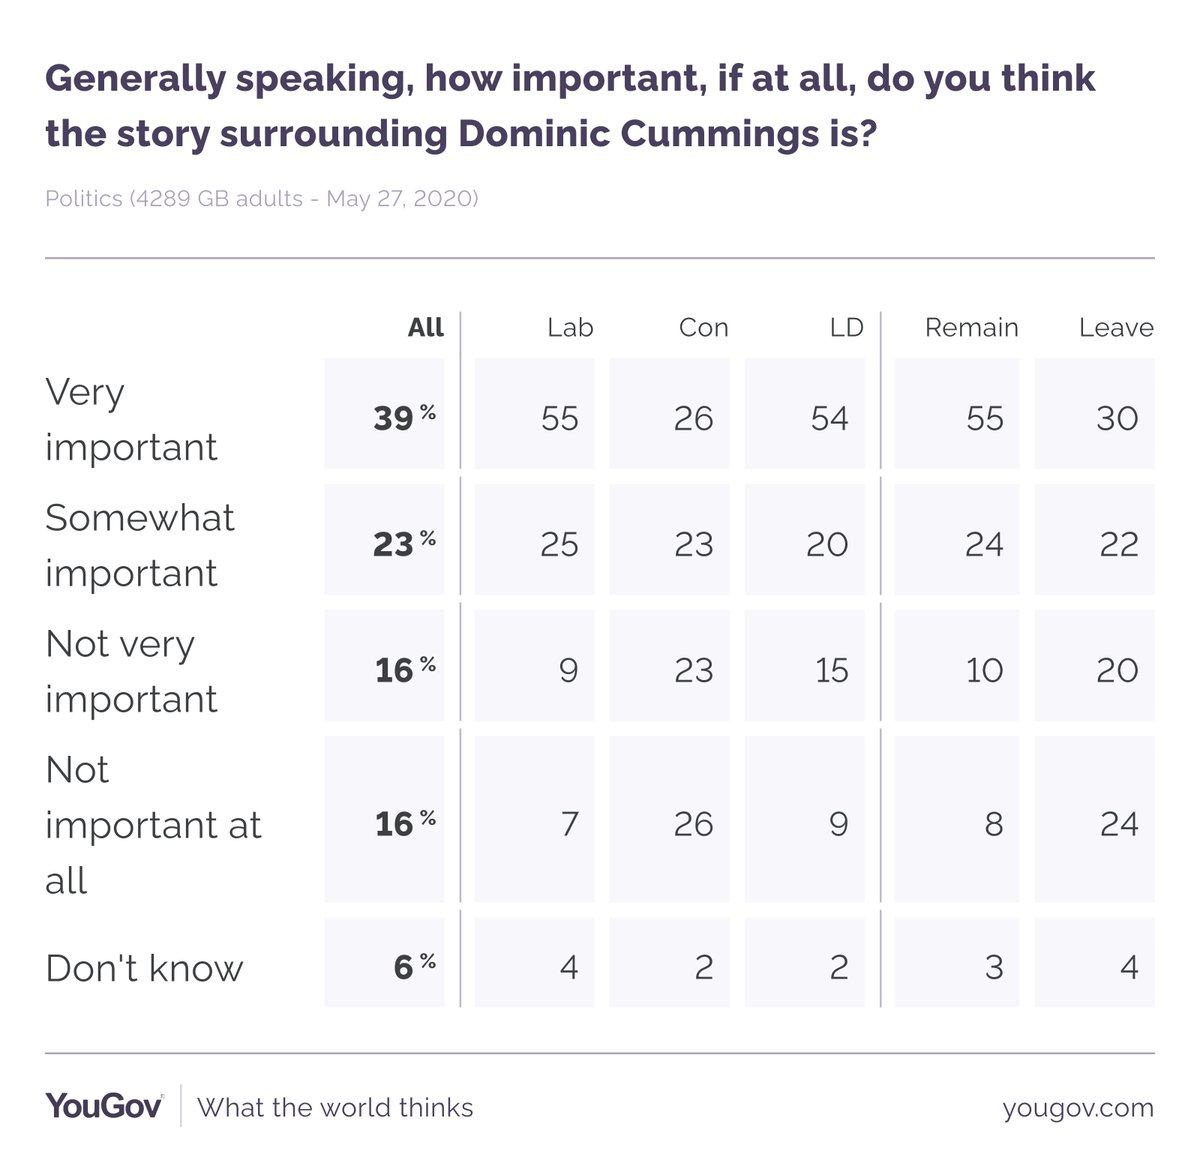 New YouGov polling finds that 62% still say the Cummings row is important or very important